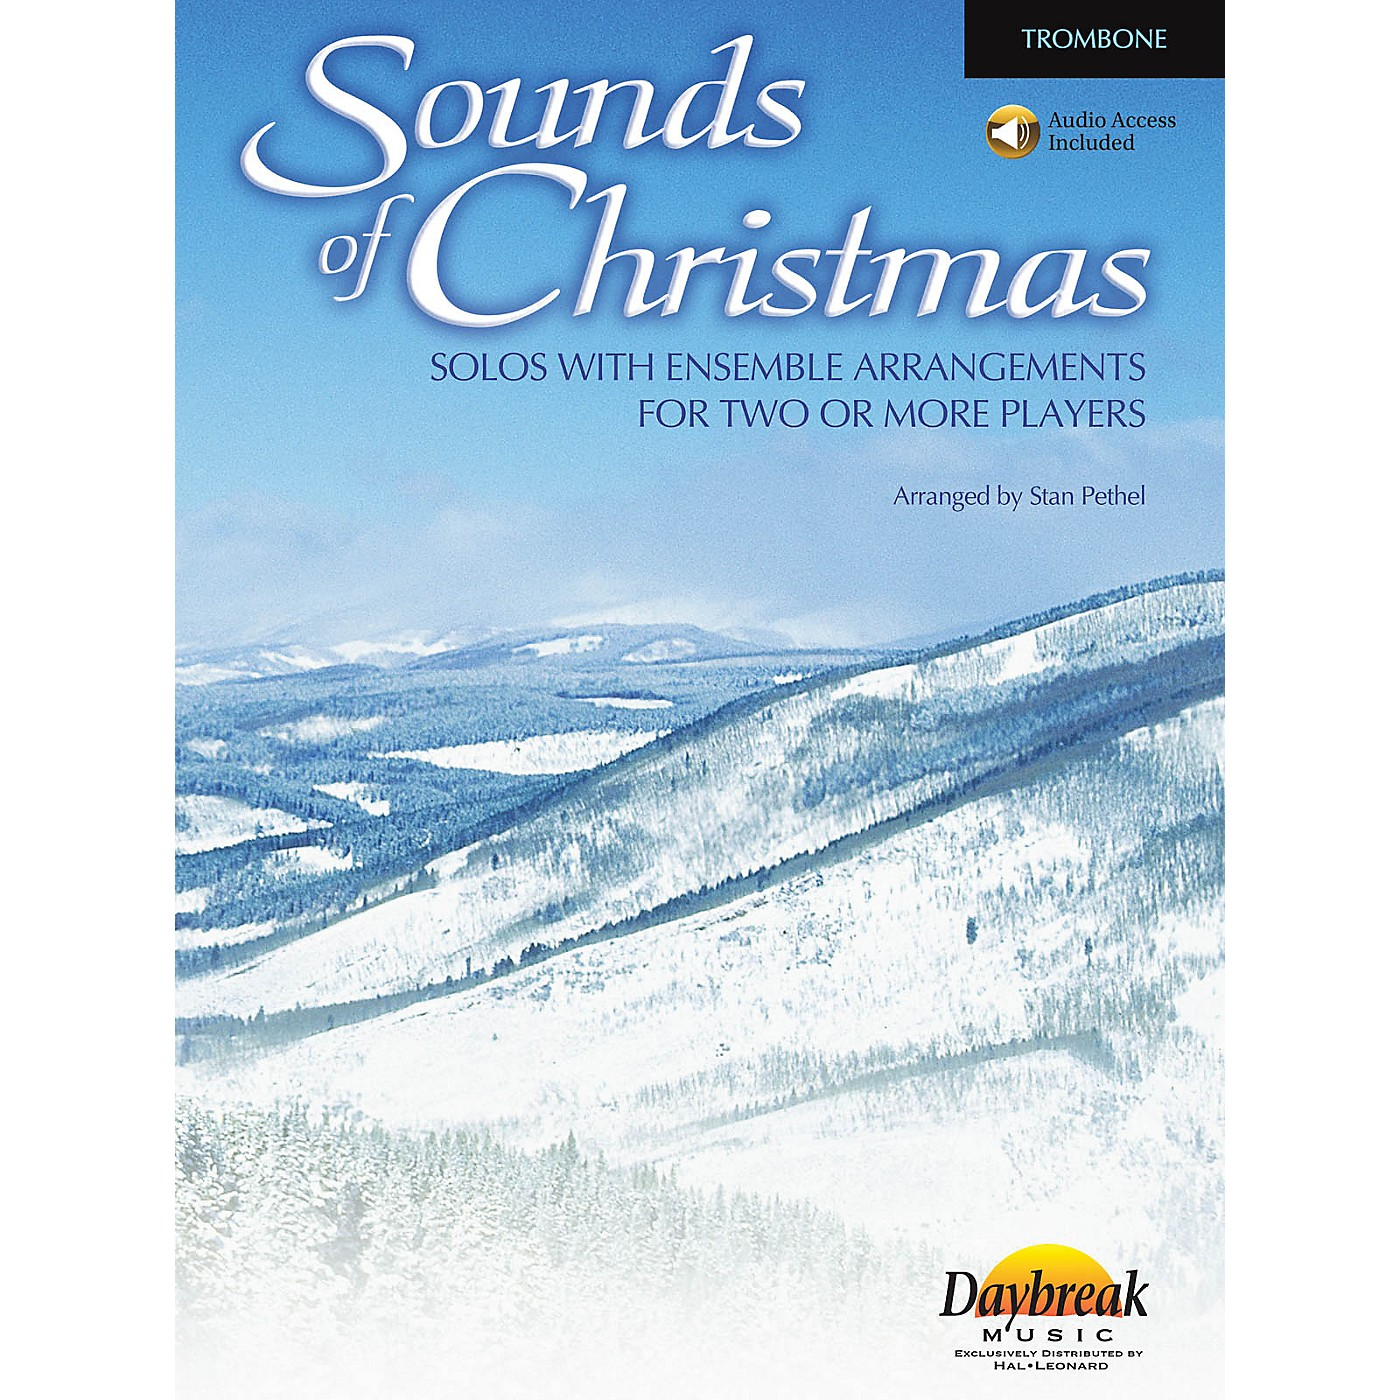 Daybreak Music Sounds of Christmas (Solos with Ensemble Arrangements for Two or More Players) Trombone thumbnail